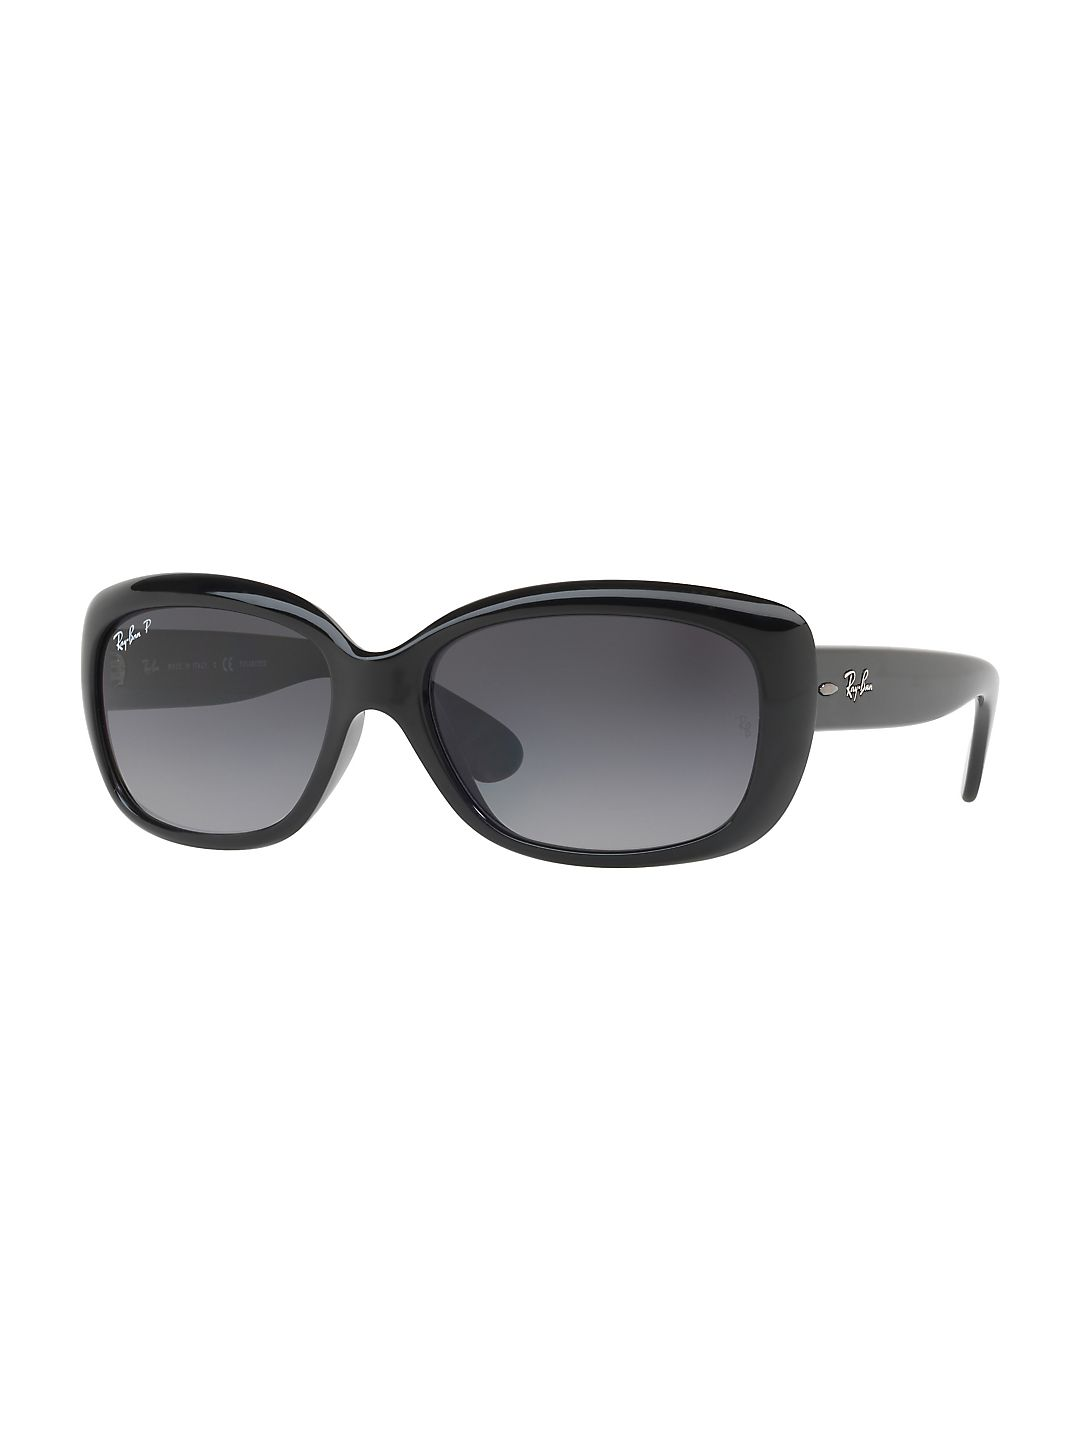 Ray-Ban Women's RB4101 Jackie Ohh Sunglasses, 58mm